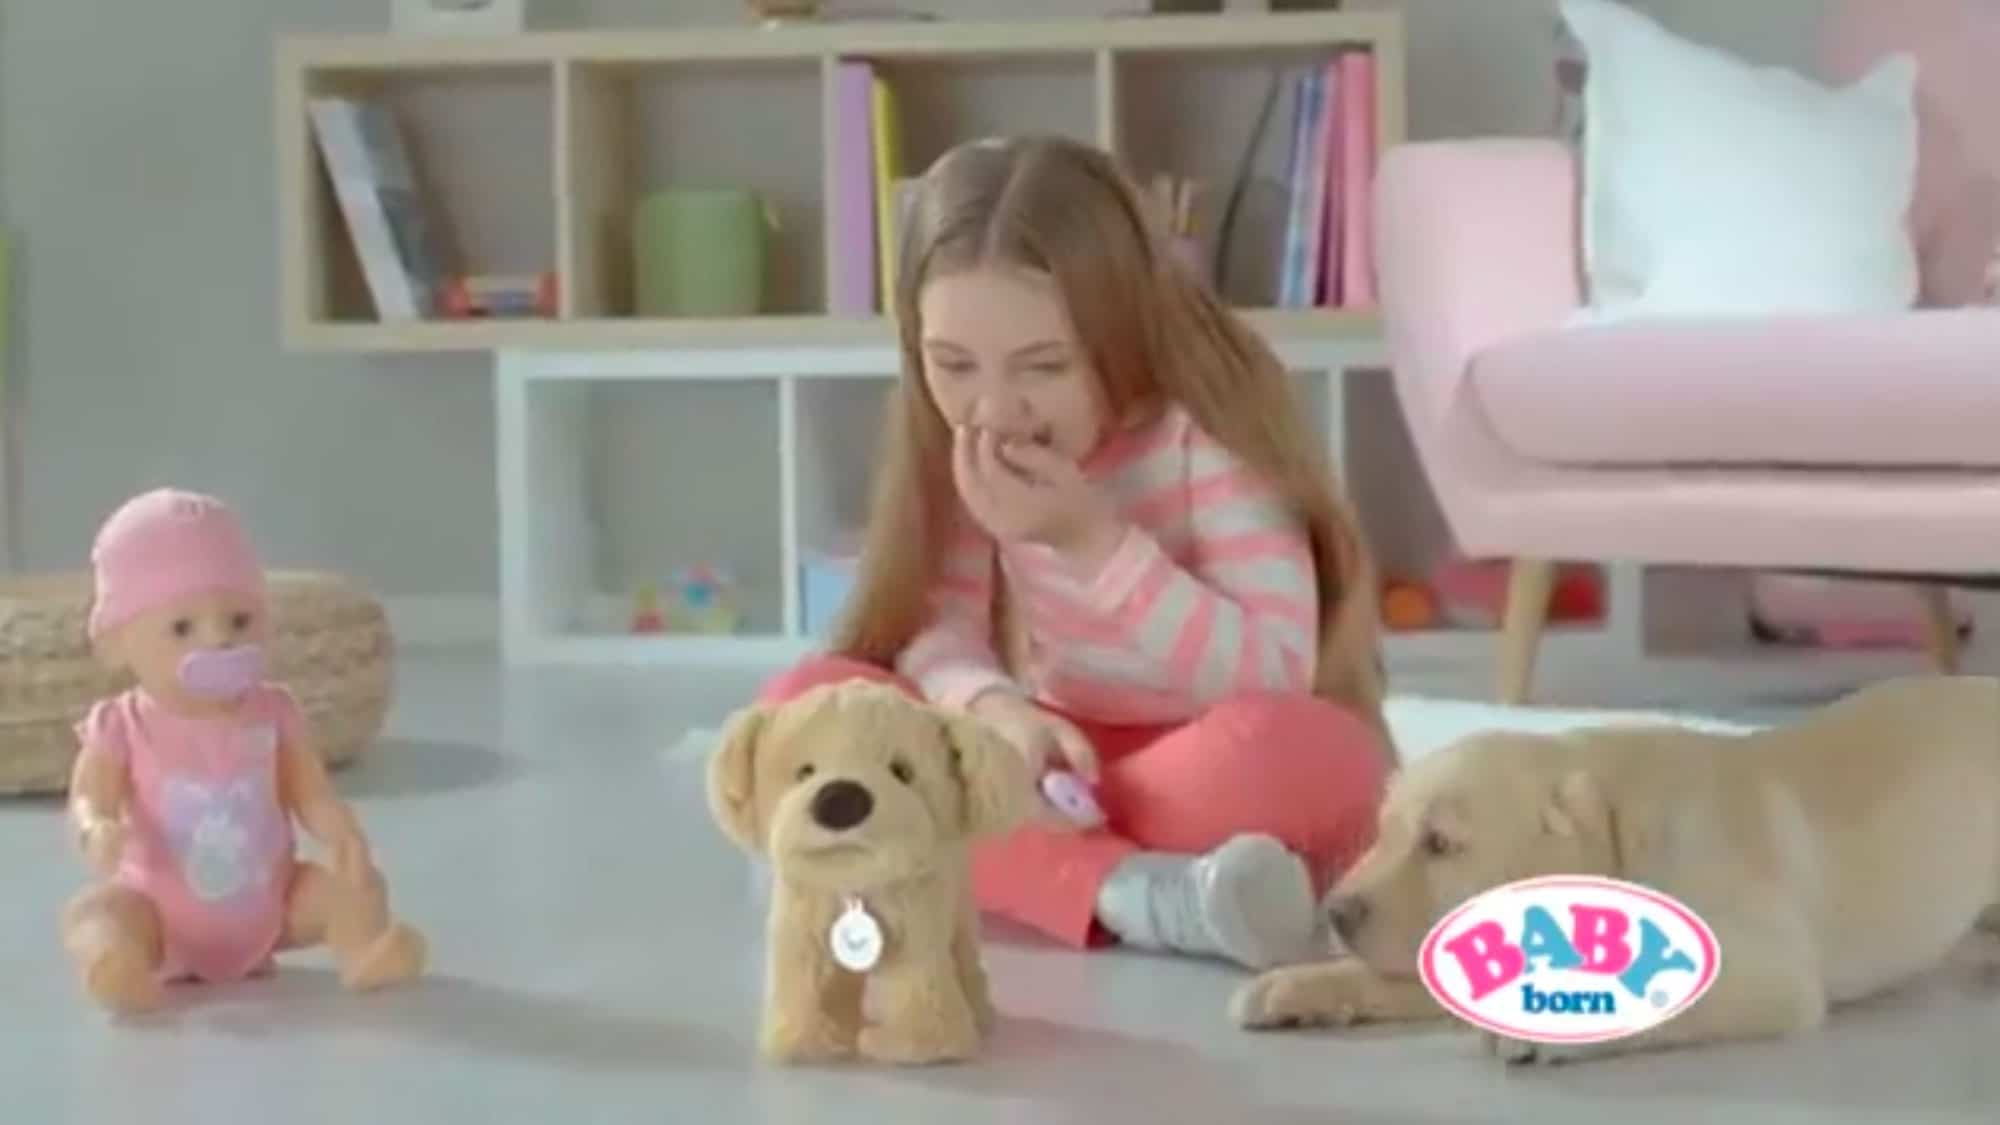 tv commercial voiceover by Natalie Cooper for Zapf Creation kids toys